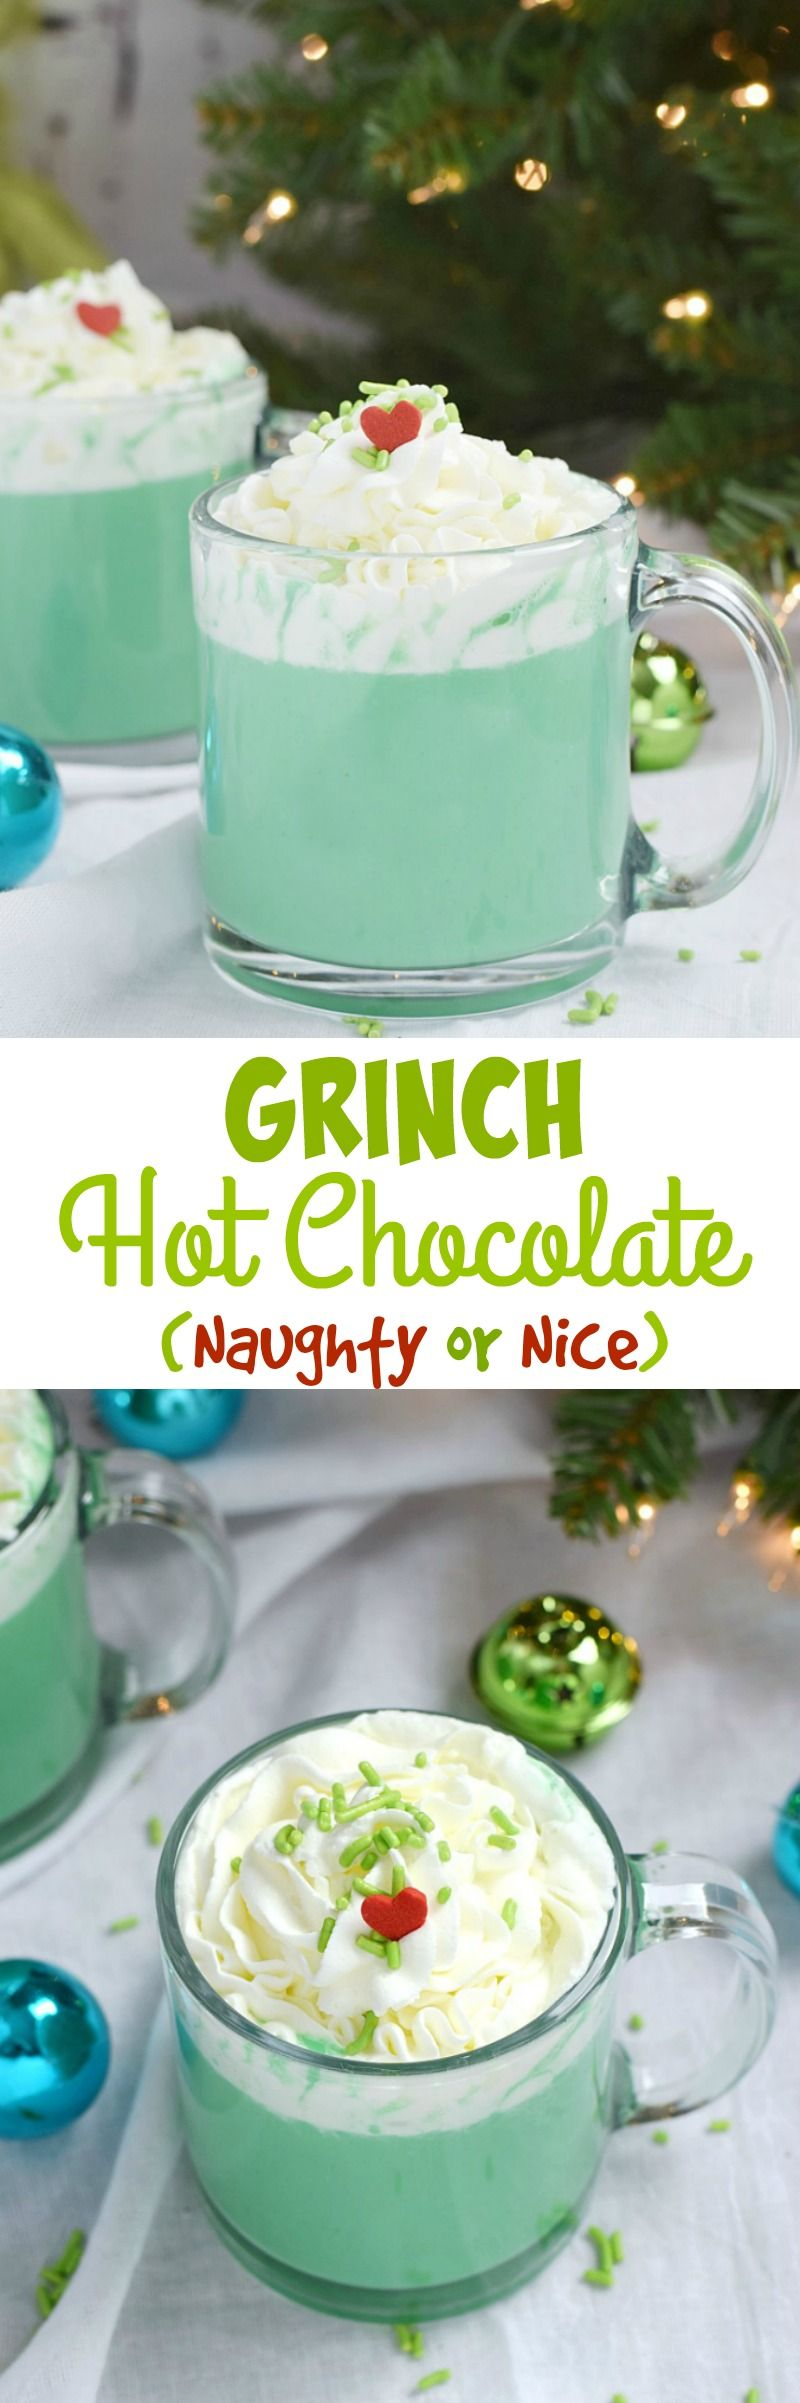 Would you like your Grinch Hot Chocolate served Naughty or Nice? You get to decide how everyone in the family gets to warm up this holiday season | cookingwithcurls.com